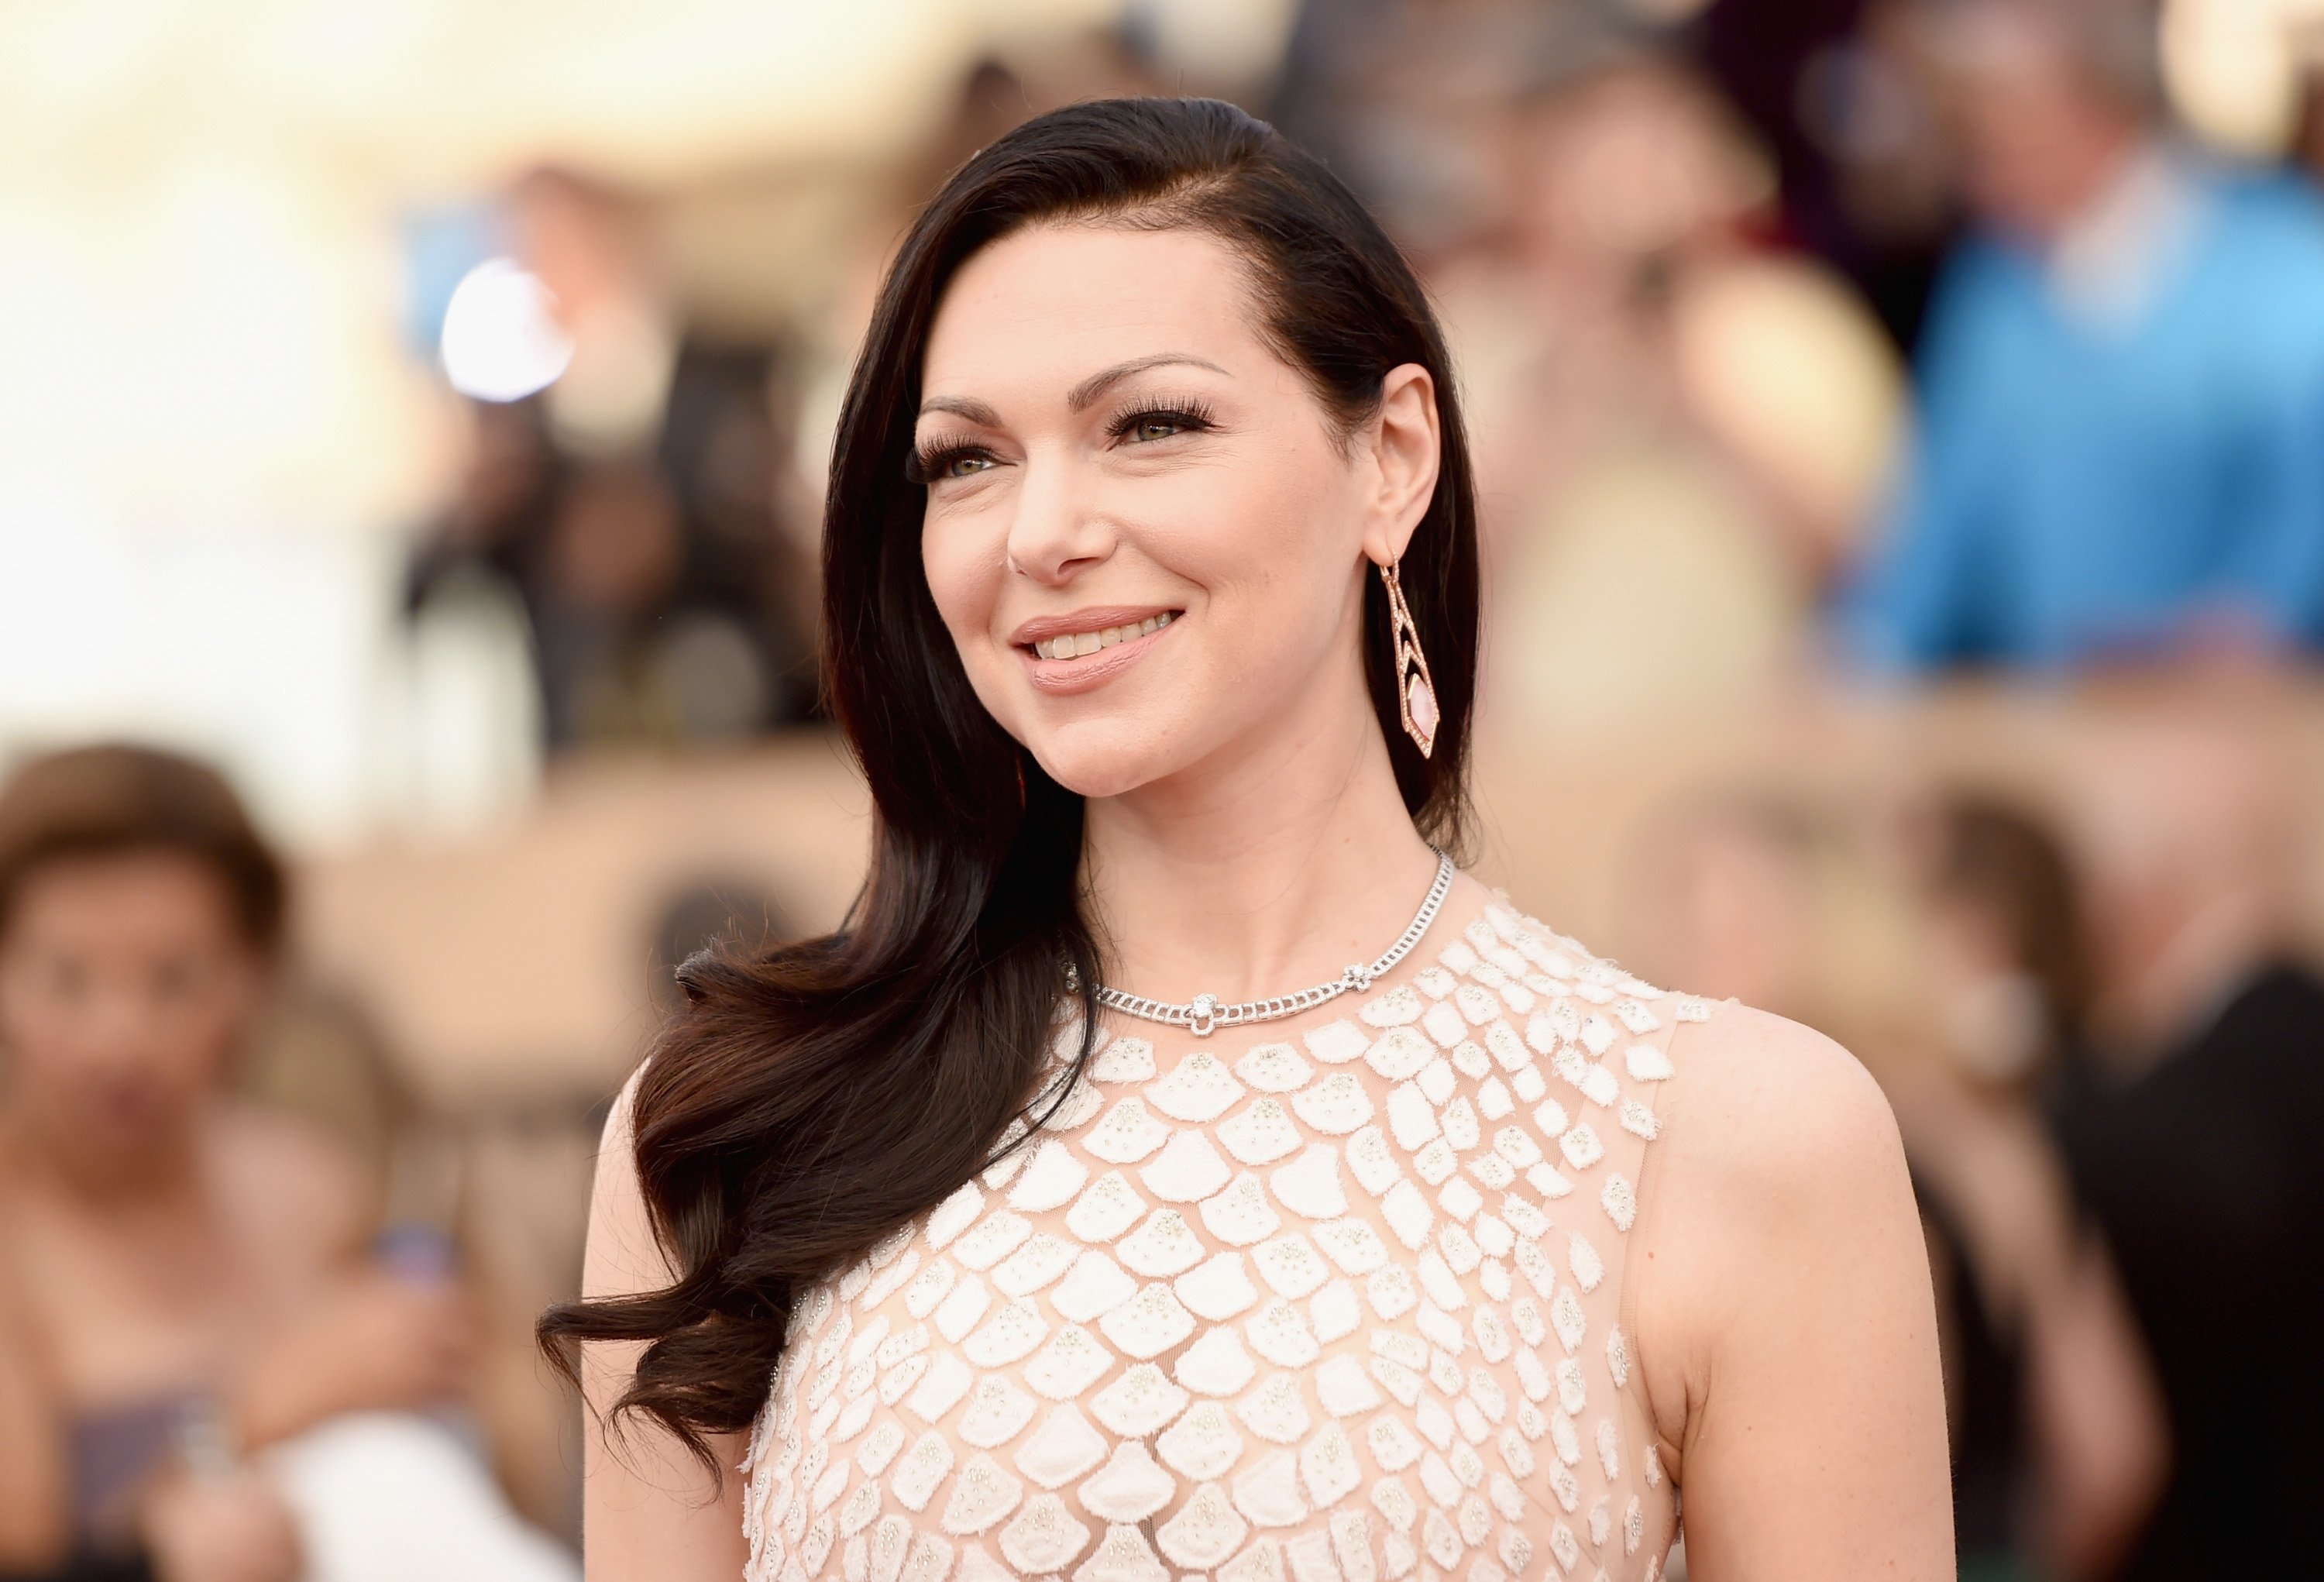 Laura Prepon at The Shrine Auditorium on January 30, 2016. | Photo: Getty Images